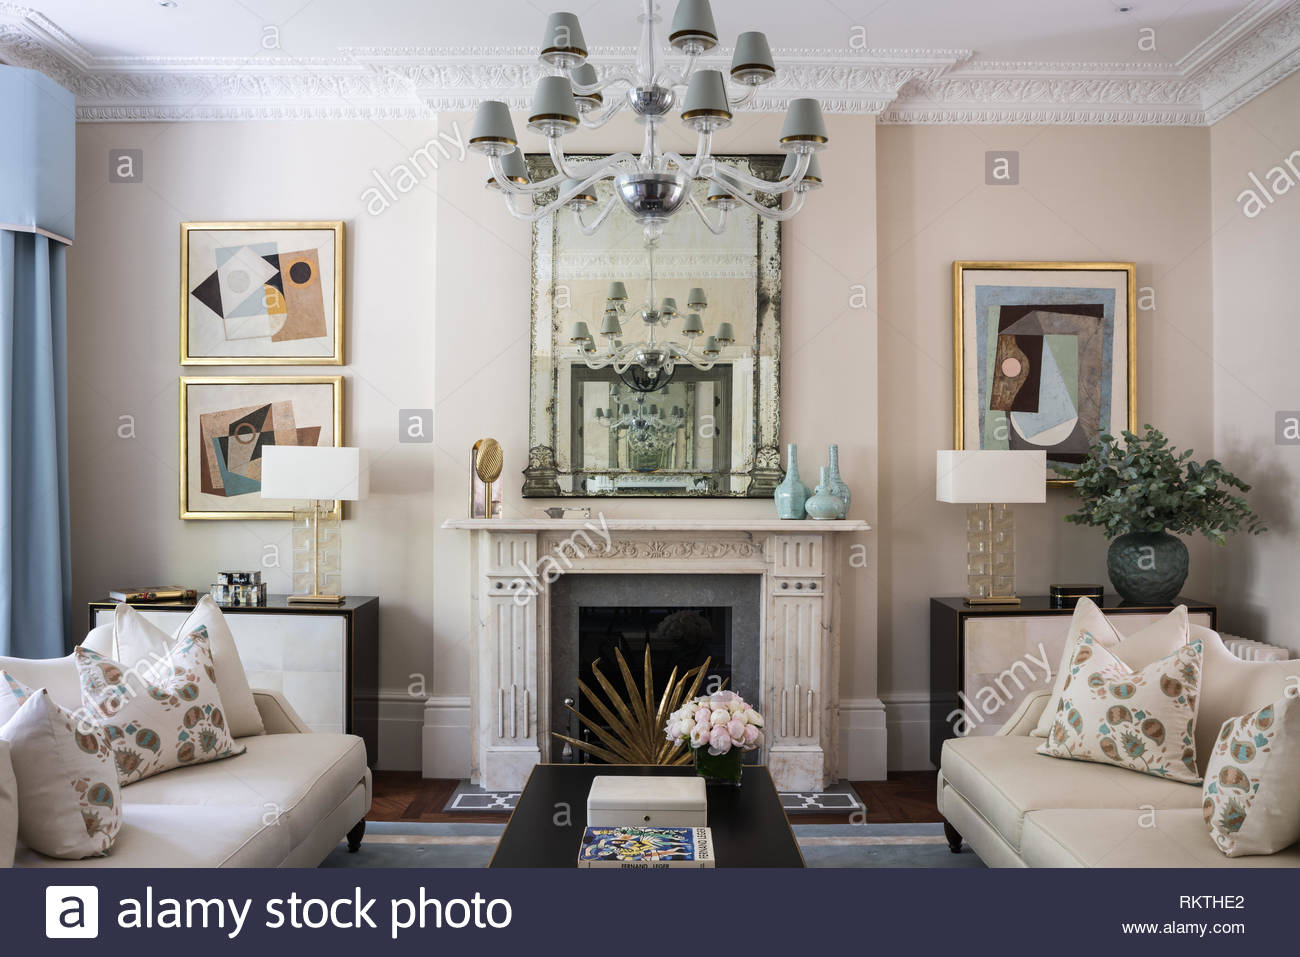 Symmetrical living room with vintage mirror above fire - Stock Image